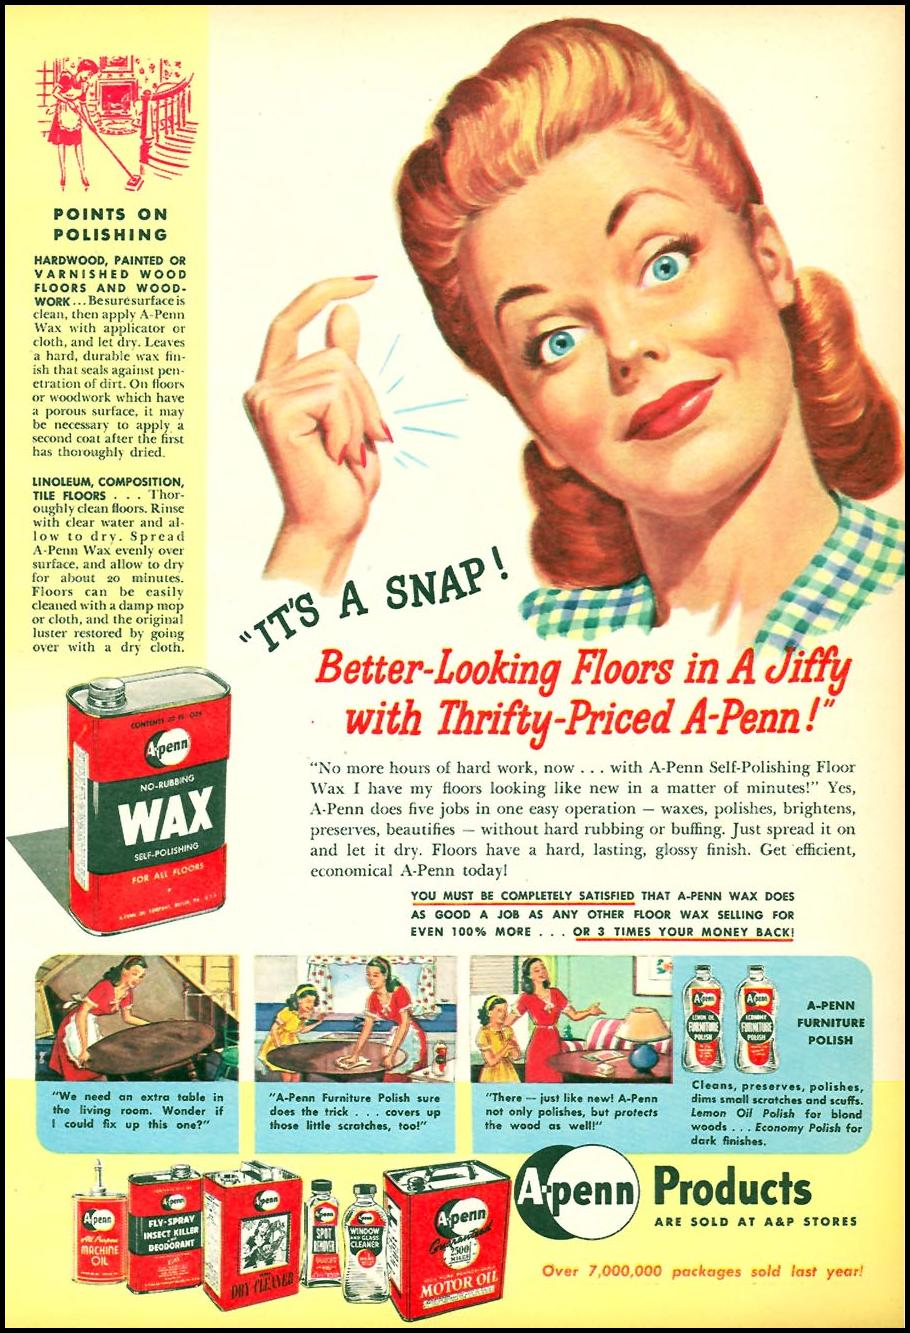 A-PENN PRODUCTS